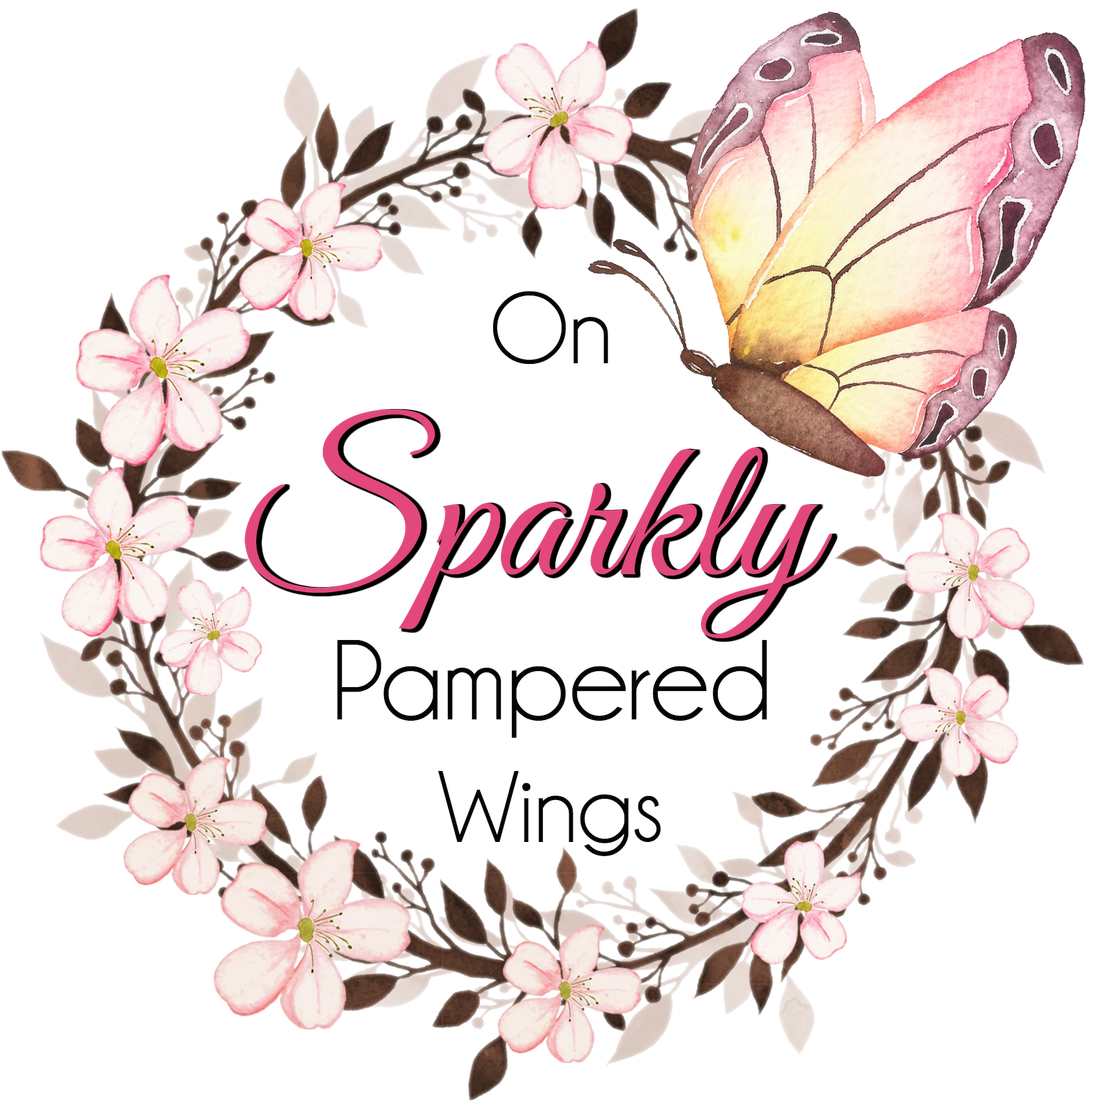 Origami Owl On Sparkly Pampered Wings Personalized Jewelry